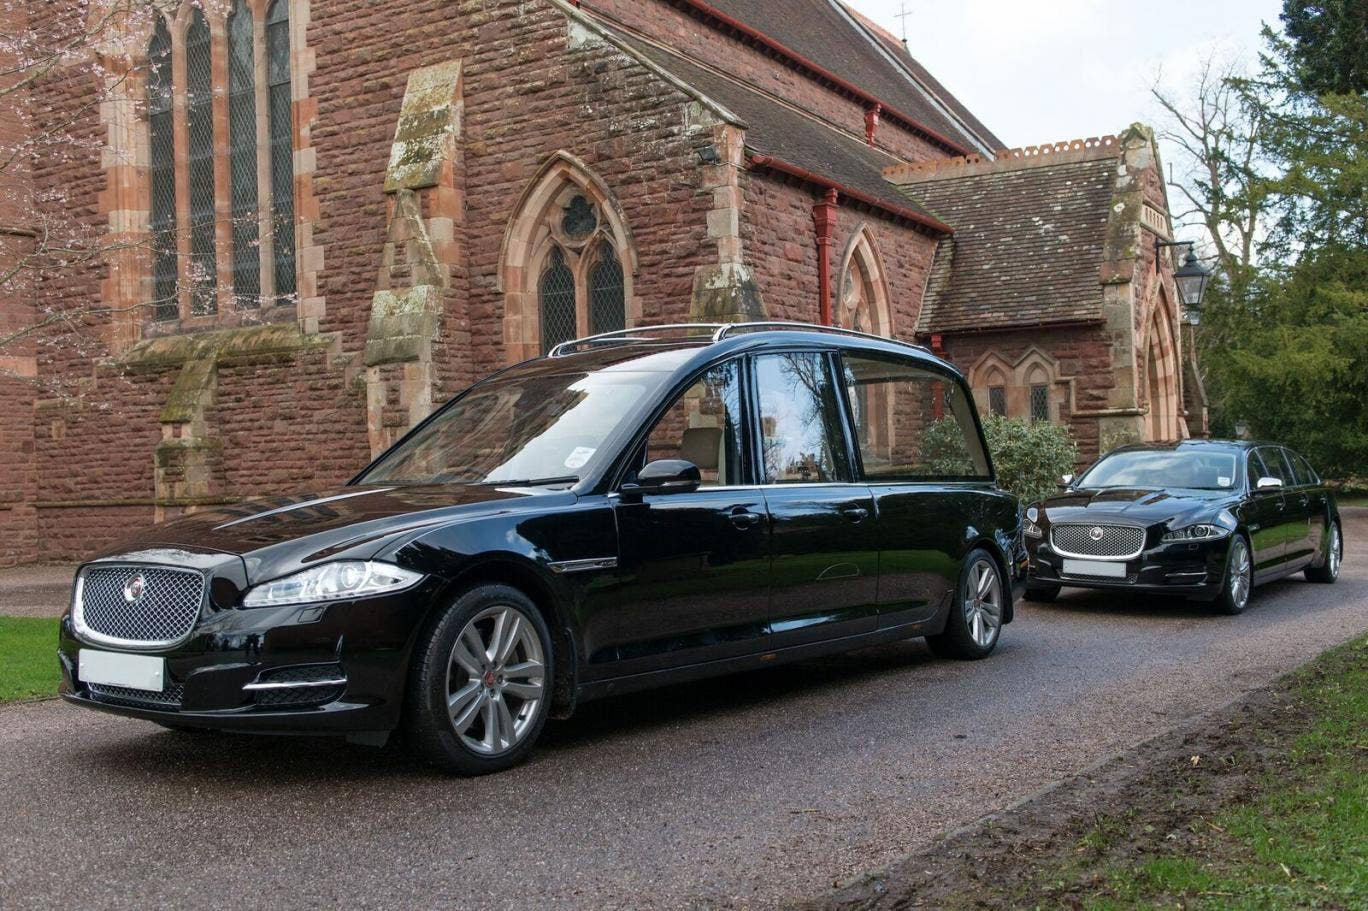 funeral director dating Funeral costs in dayton are simply too high at newcomer funeral home, families save hundreds, even thousands on burial and cremation costs.